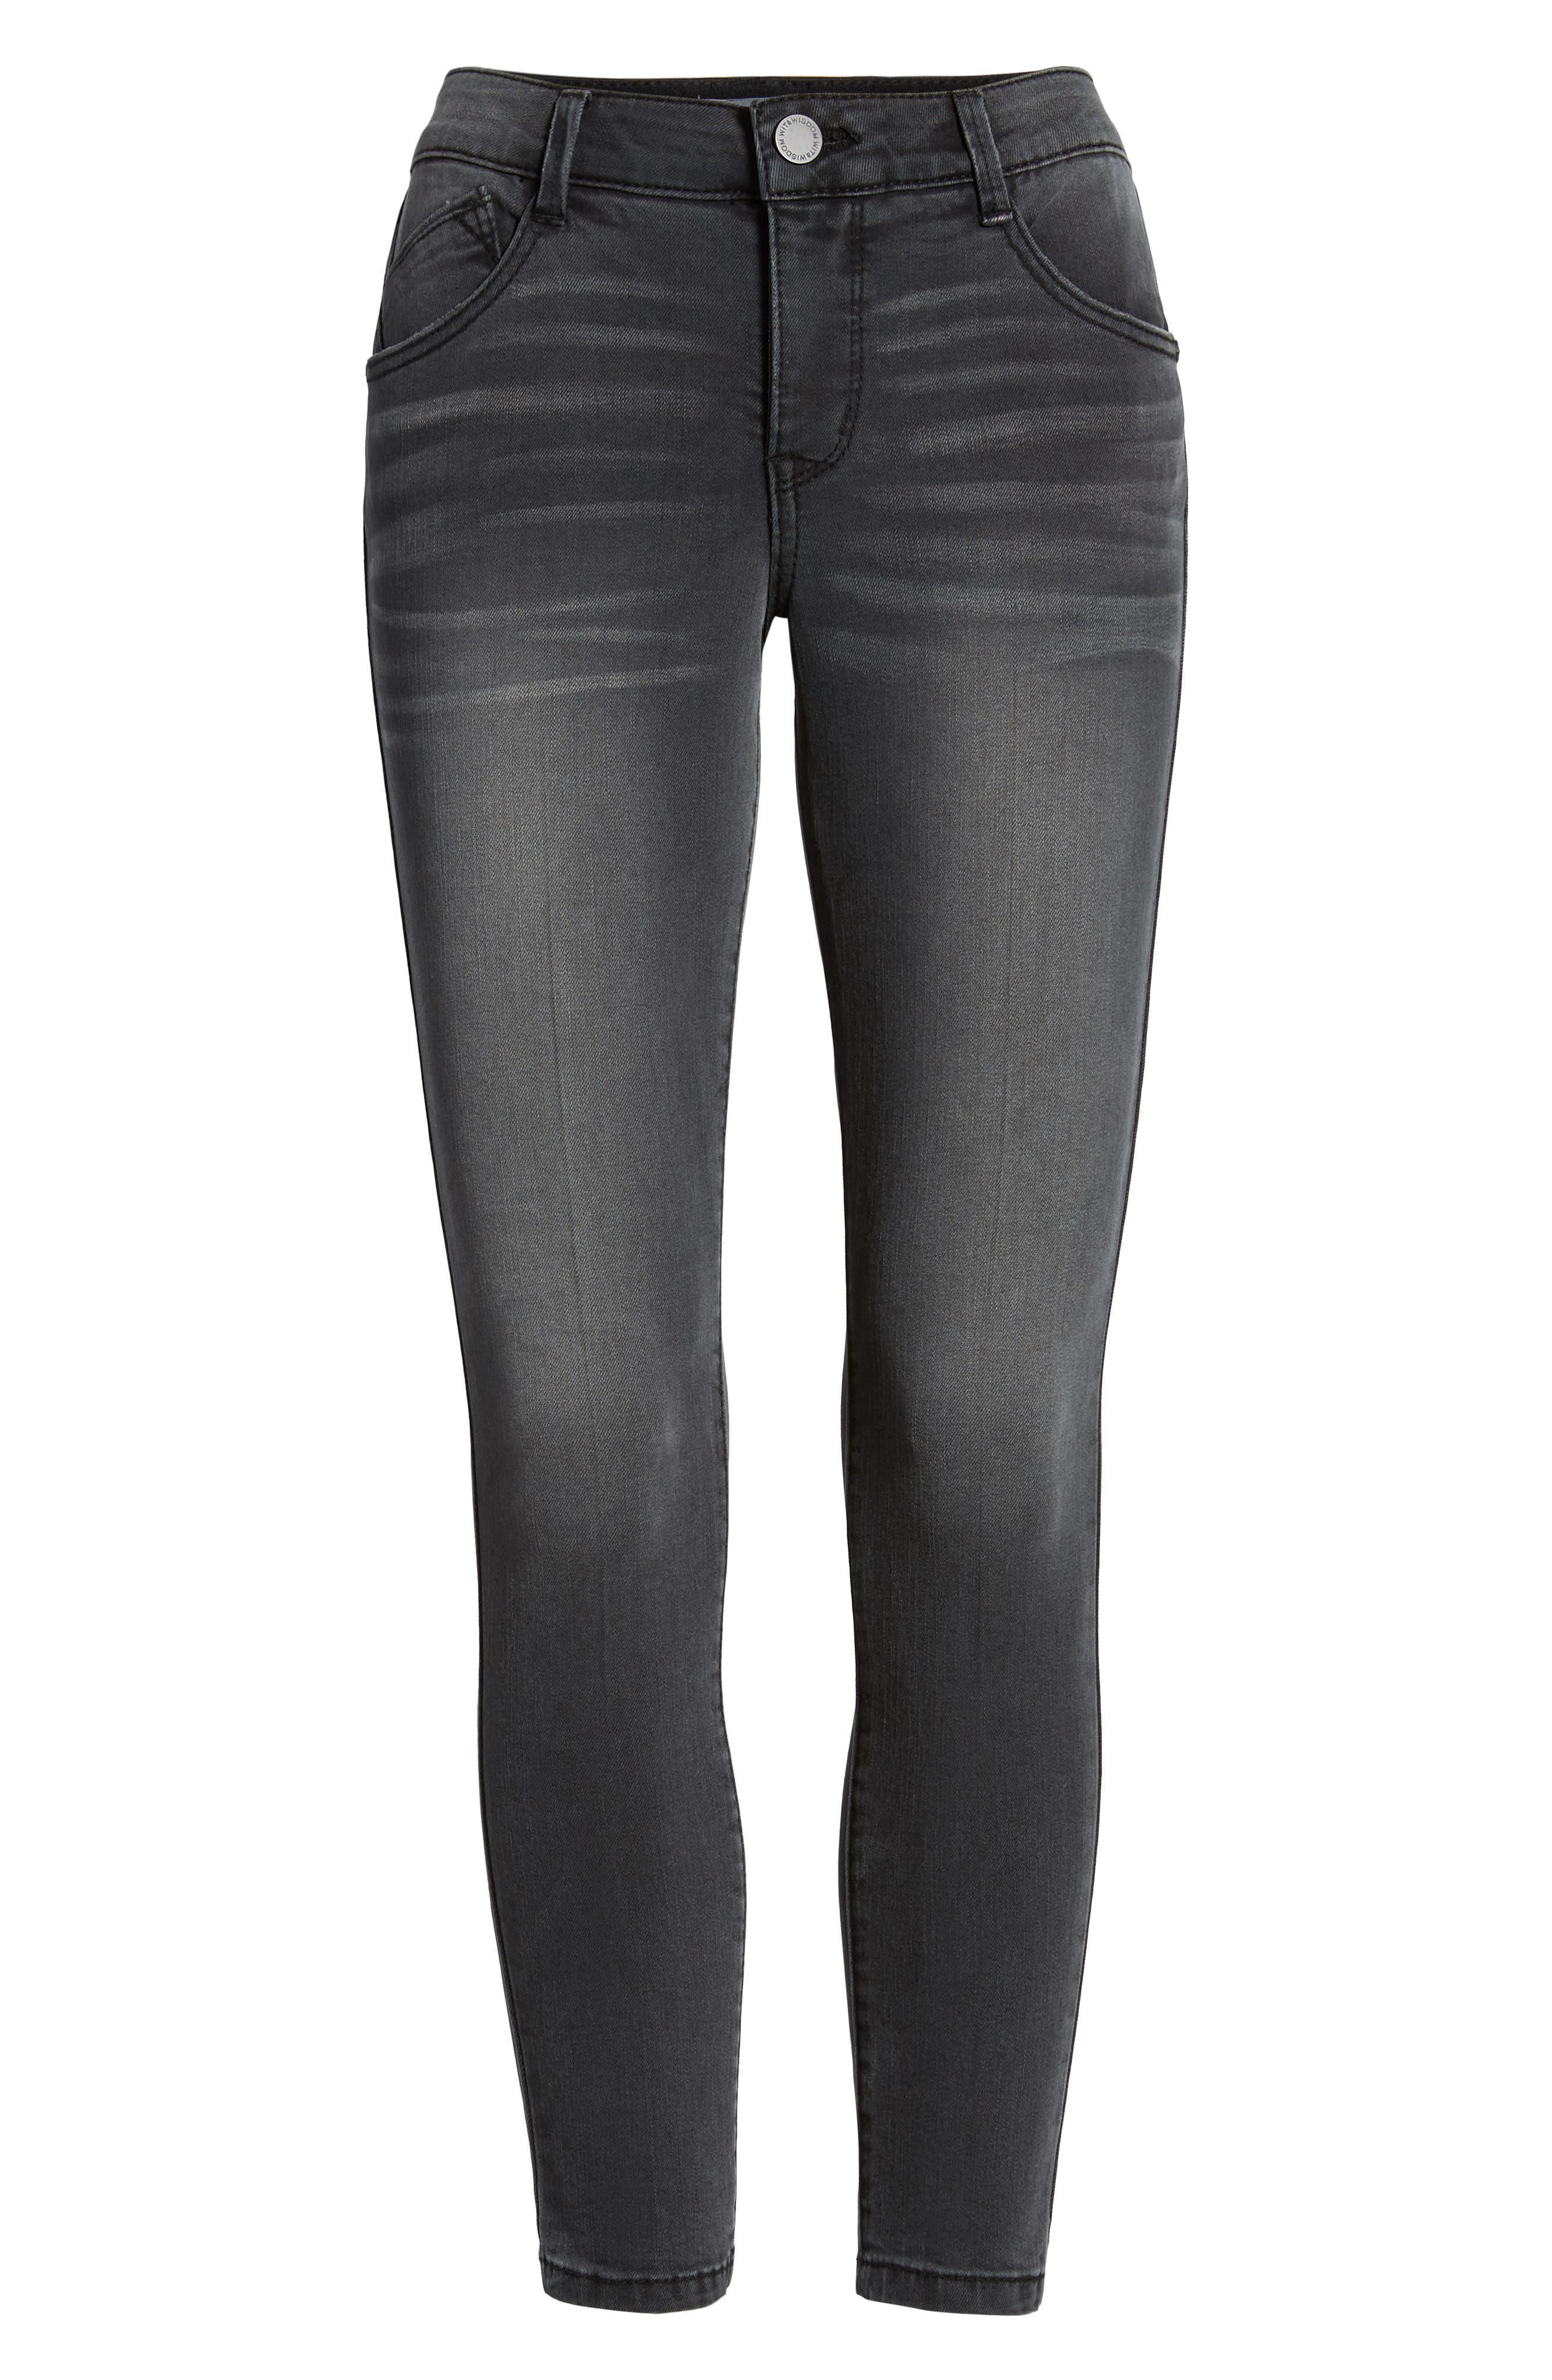 Ab-Solution Ankle Skinny Stretch Jeans,                             Alternate thumbnail 7, color,                             020